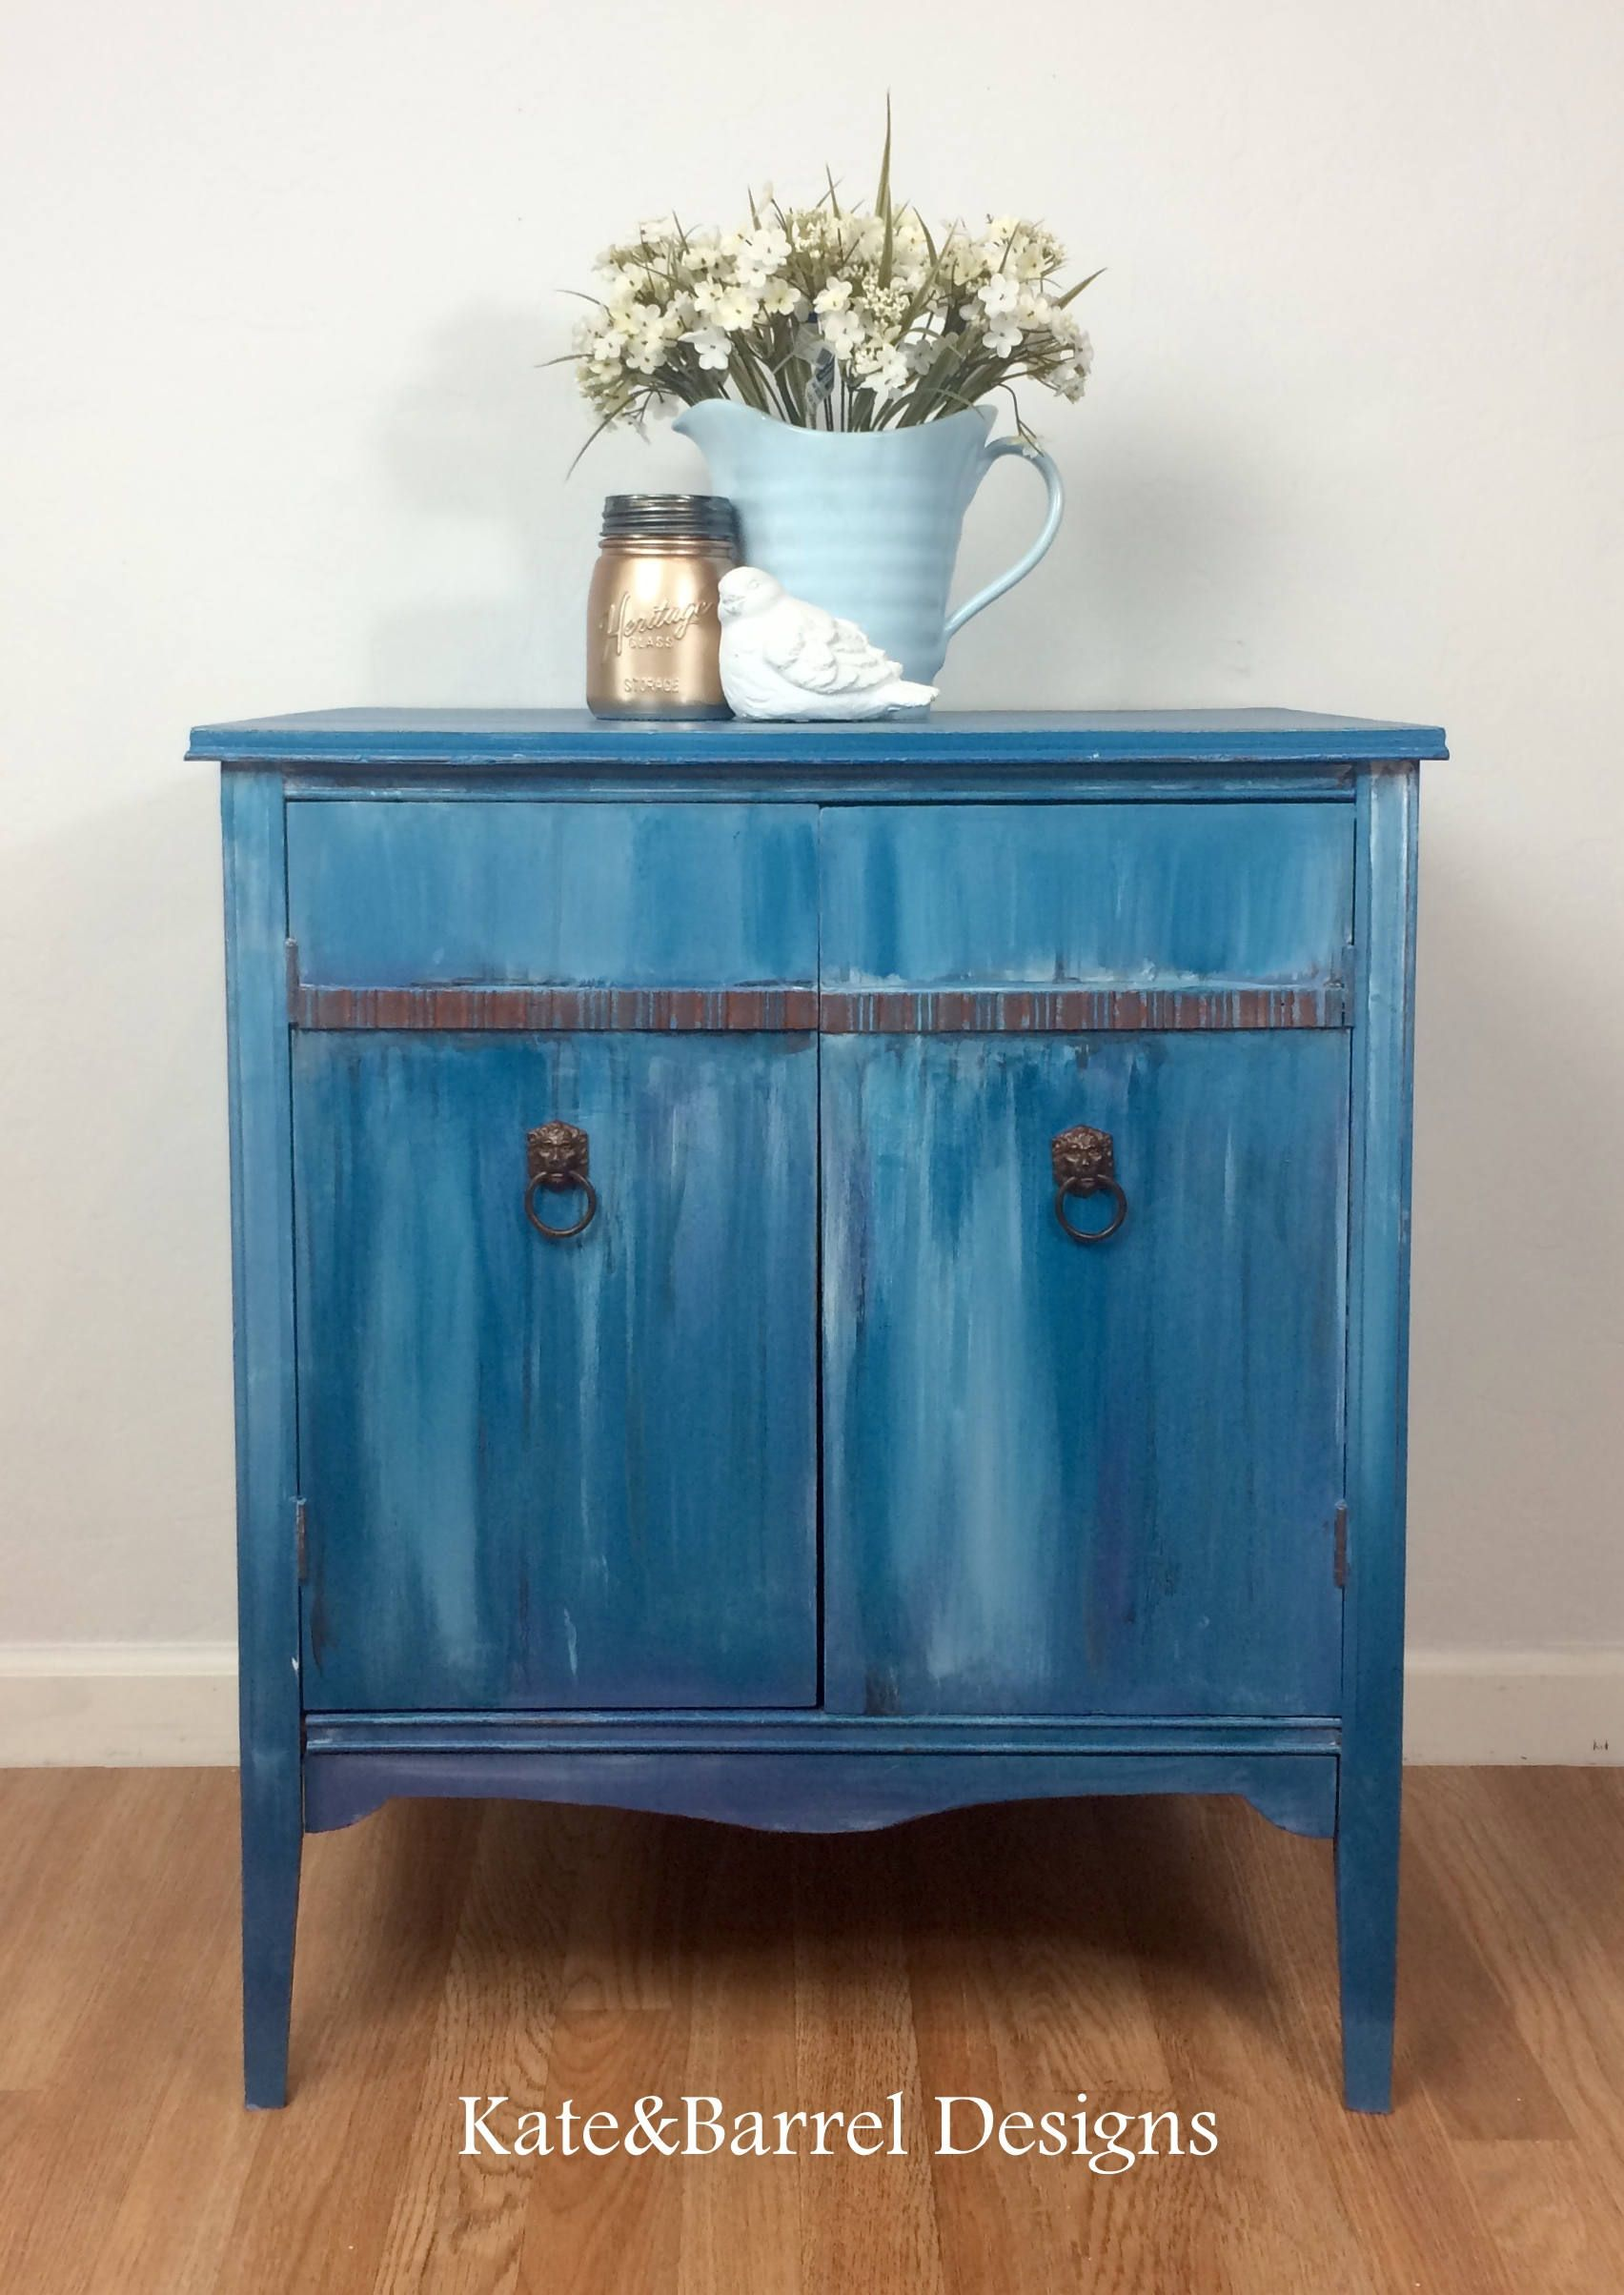 Vintage Cupboard Or Storage Cabinet In Washed Blues And Whites By Katenbarreldesigns On Etsy Misslilliannowaxchockpai Vintage Cupboard Storage Cabinet Cabinet